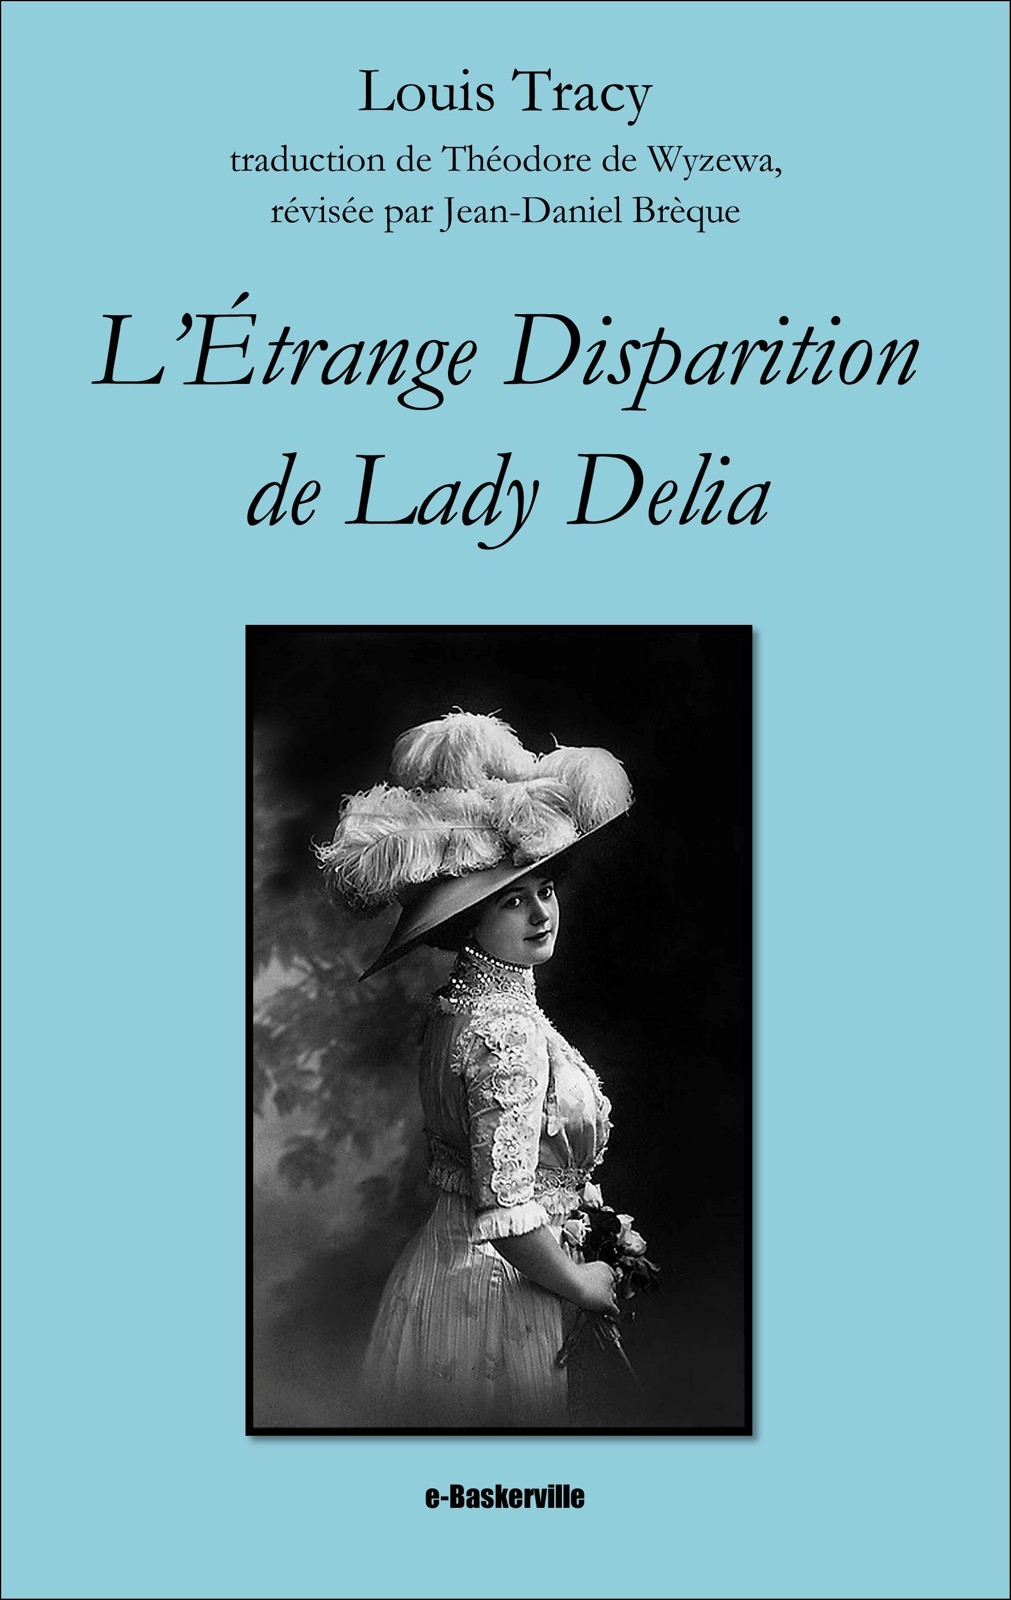 L'étrange Disparition de Lady Delia